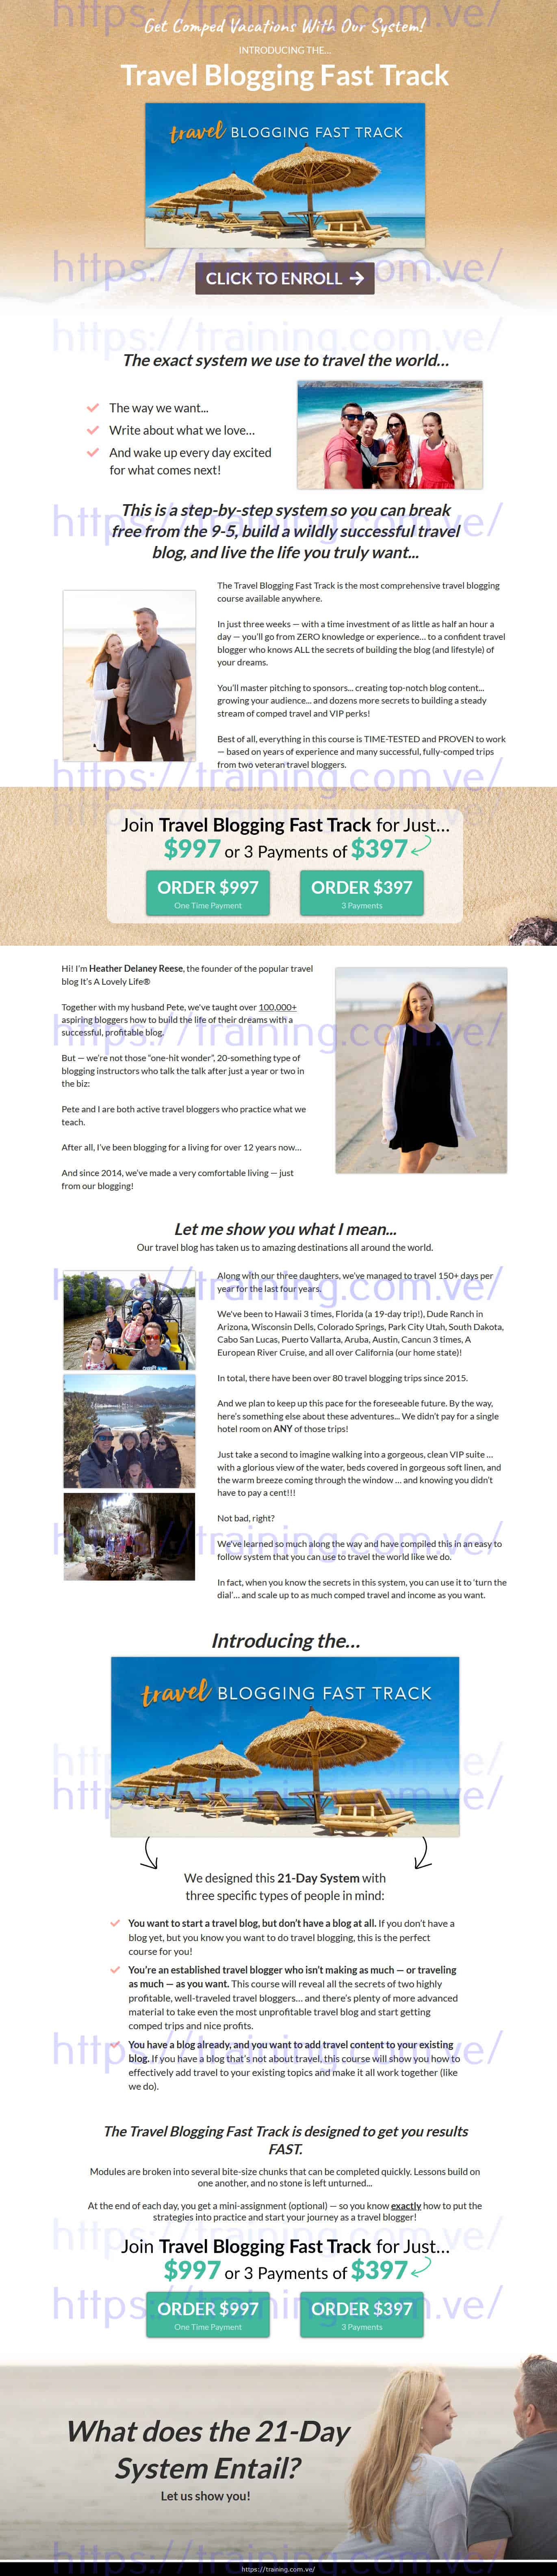 Travel Blogging Fast Track by Heather Delaney Reese Buy